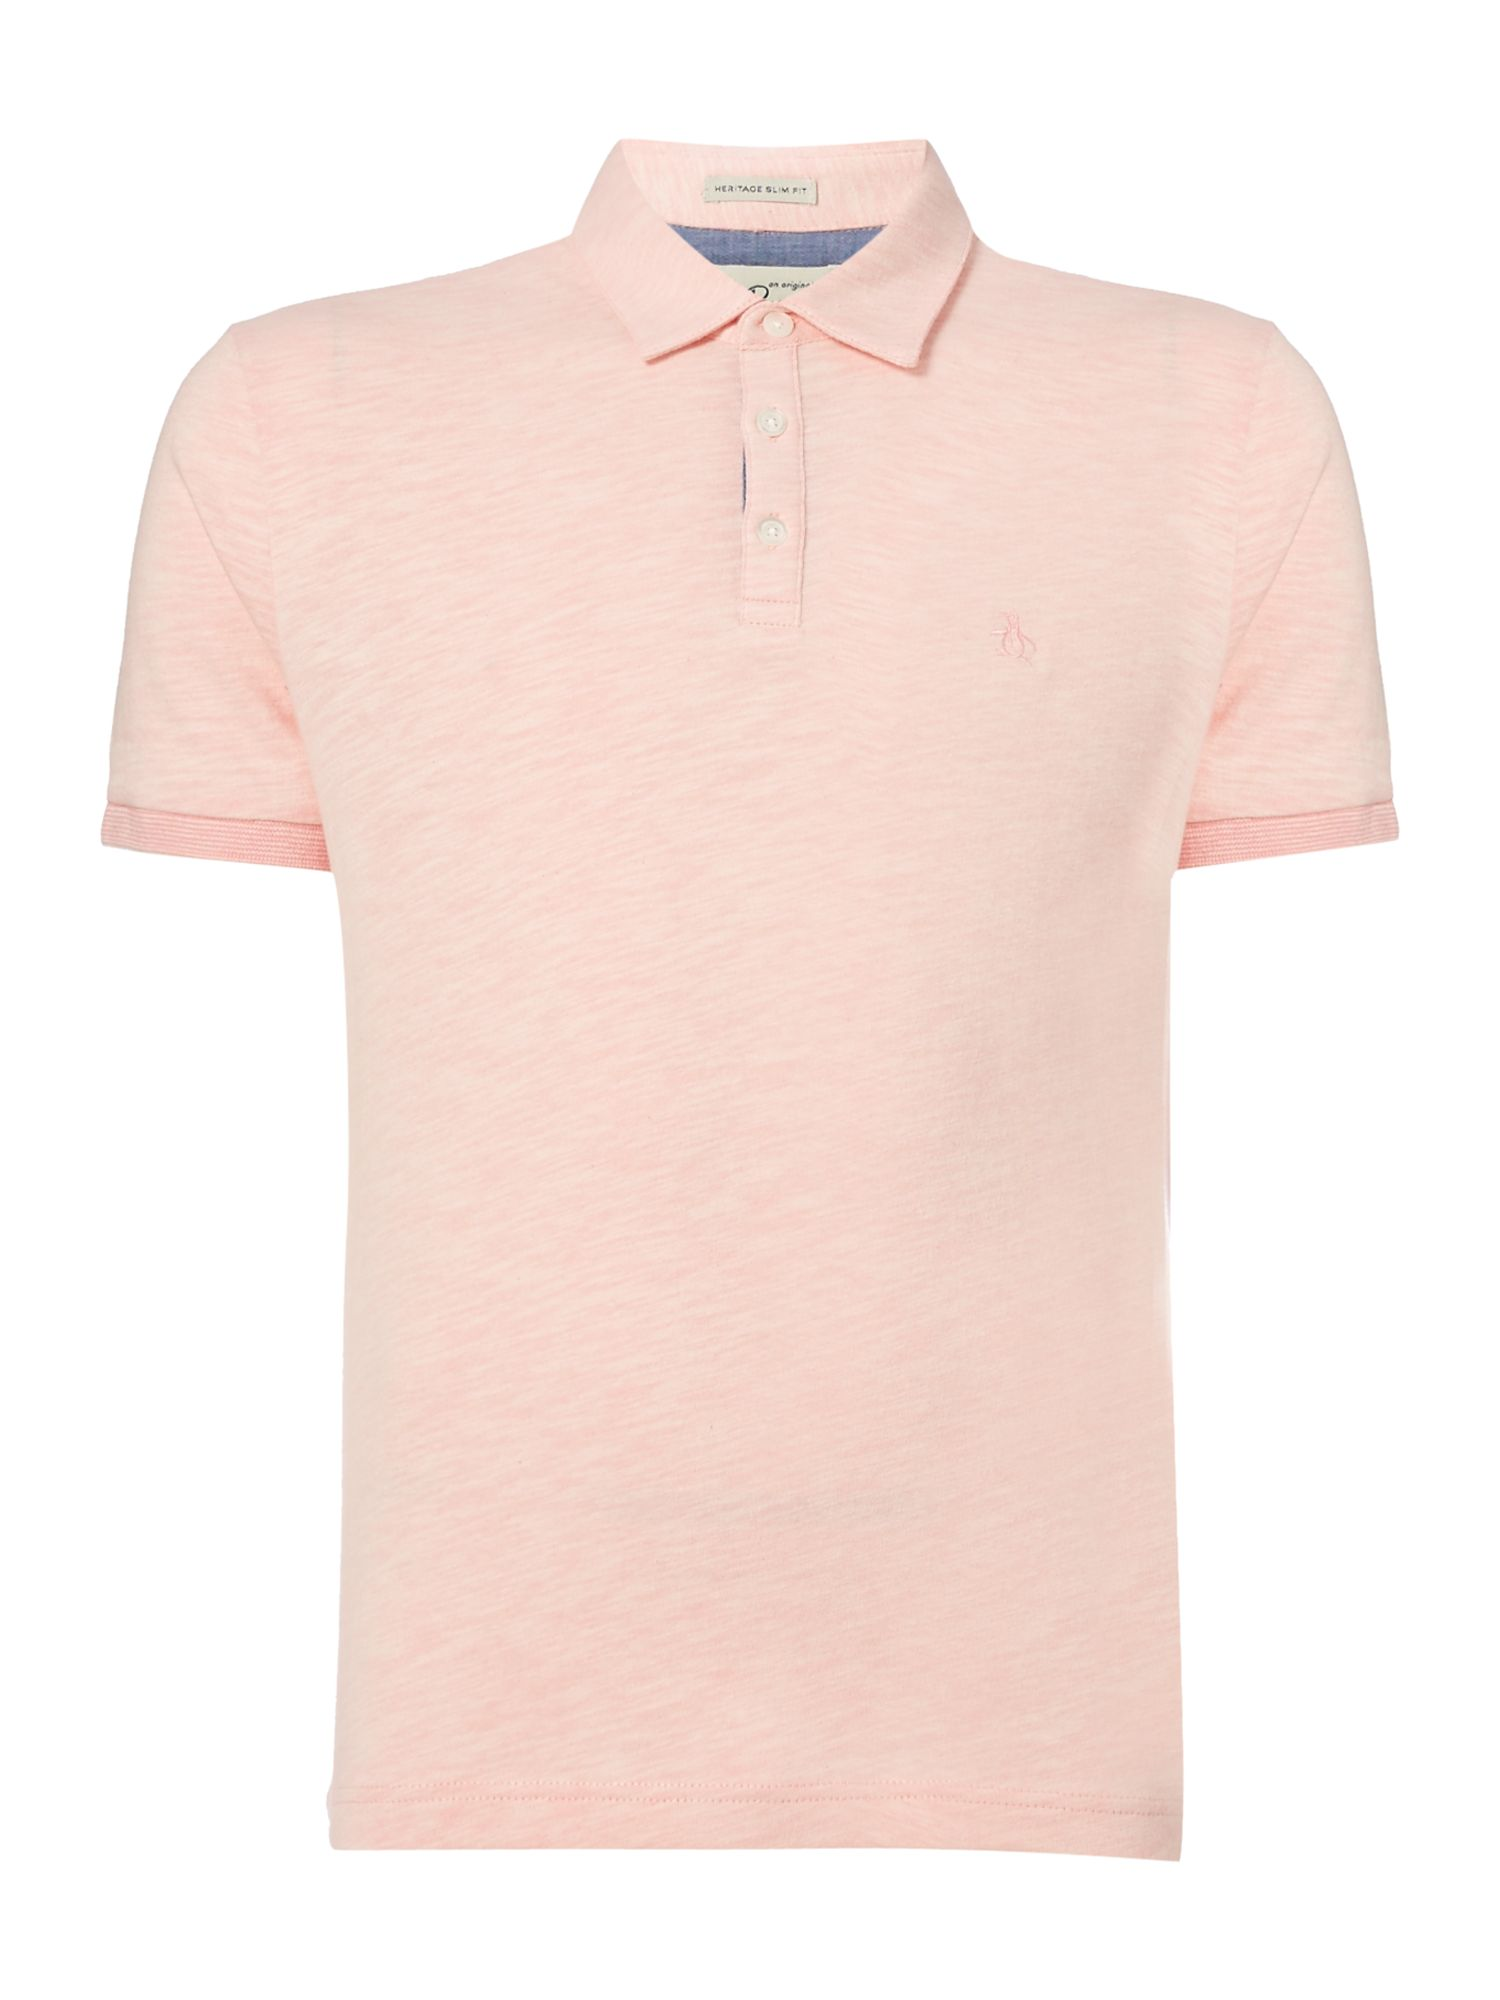 Men's Original Penguin Slub Jersey Polo Shirt, Light Pink